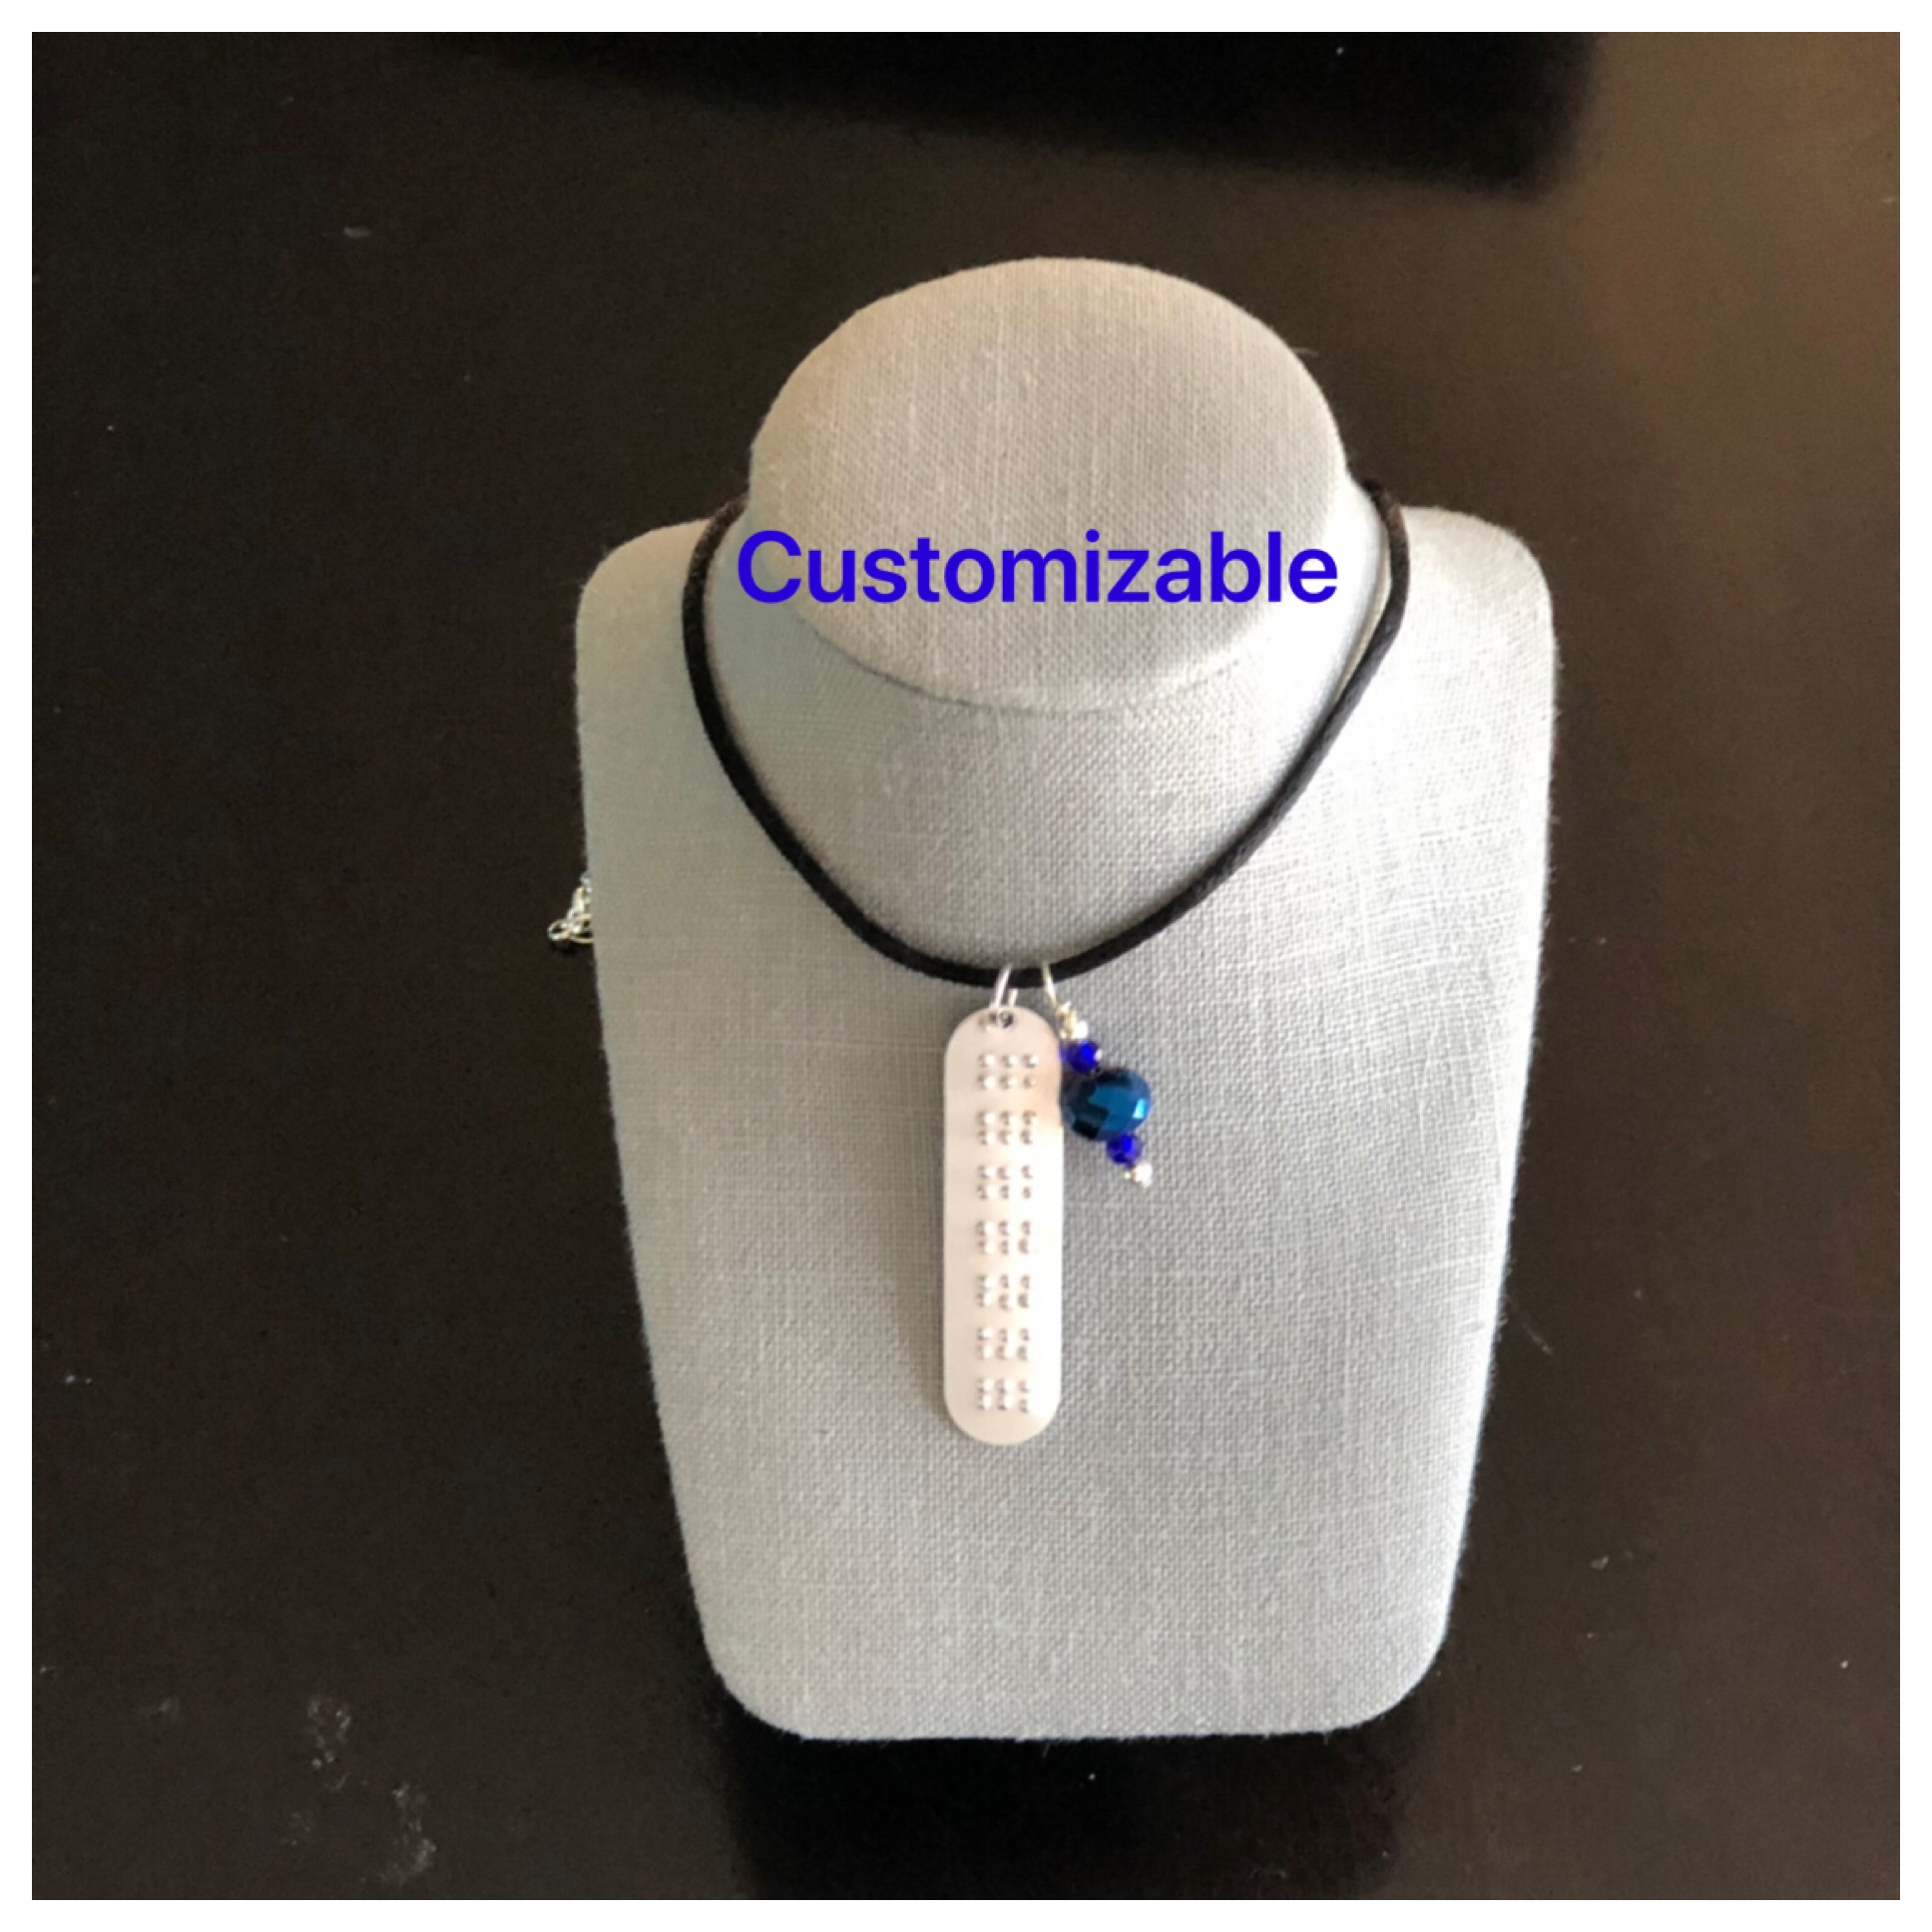 customize neckace